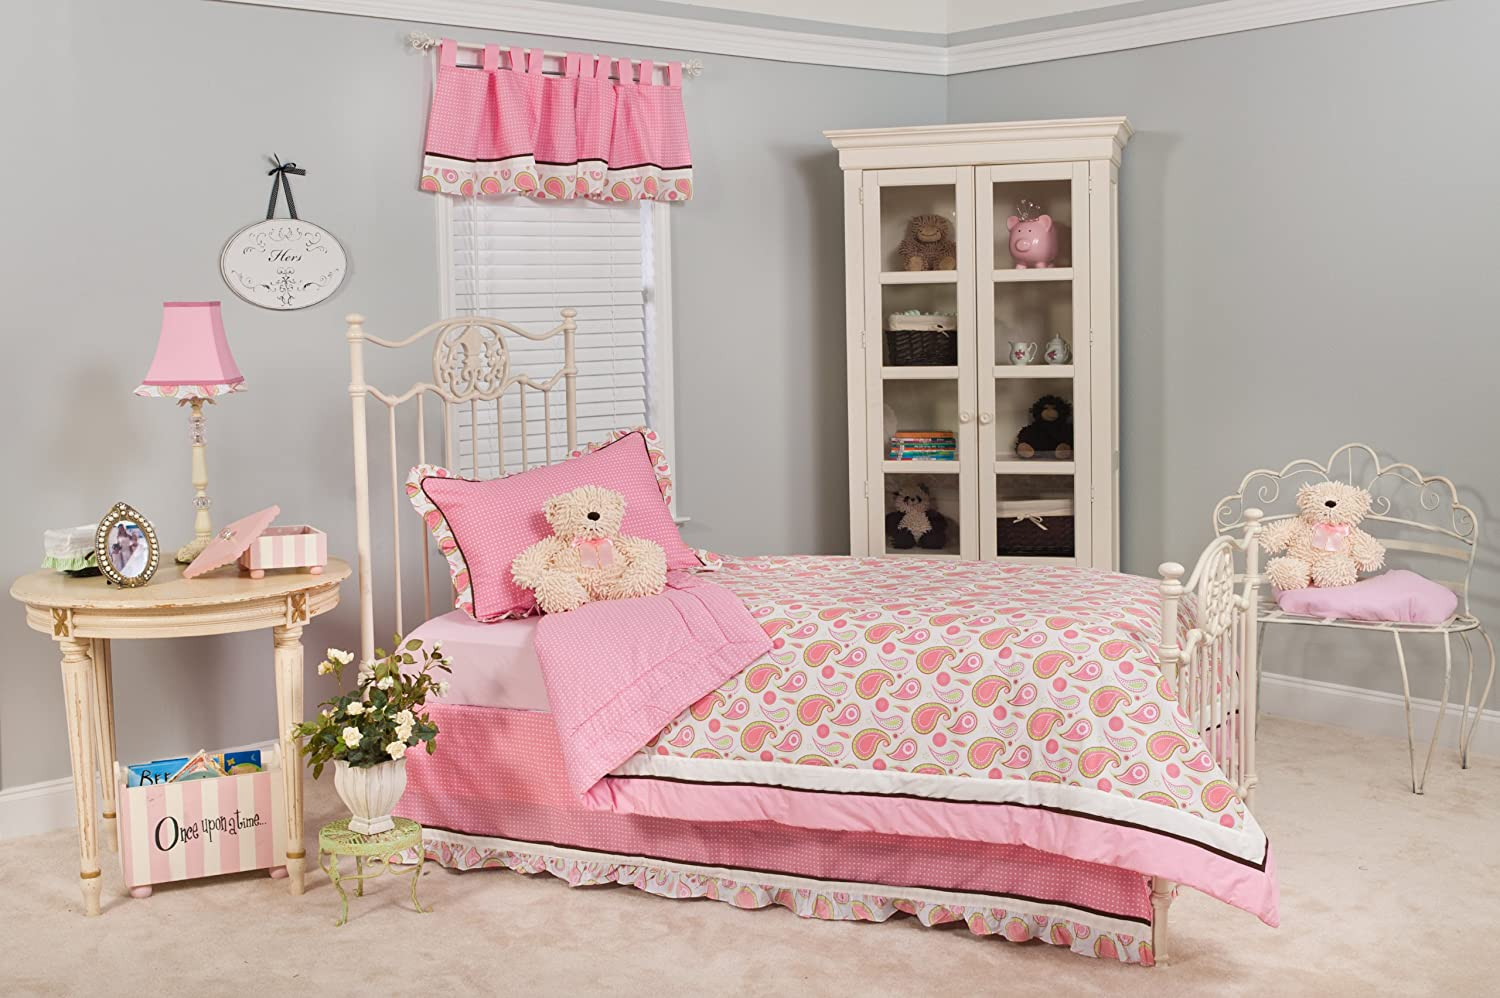 Pam Grace Creations Pam's Paisley Queen Bedding Set, Pink, White, Green